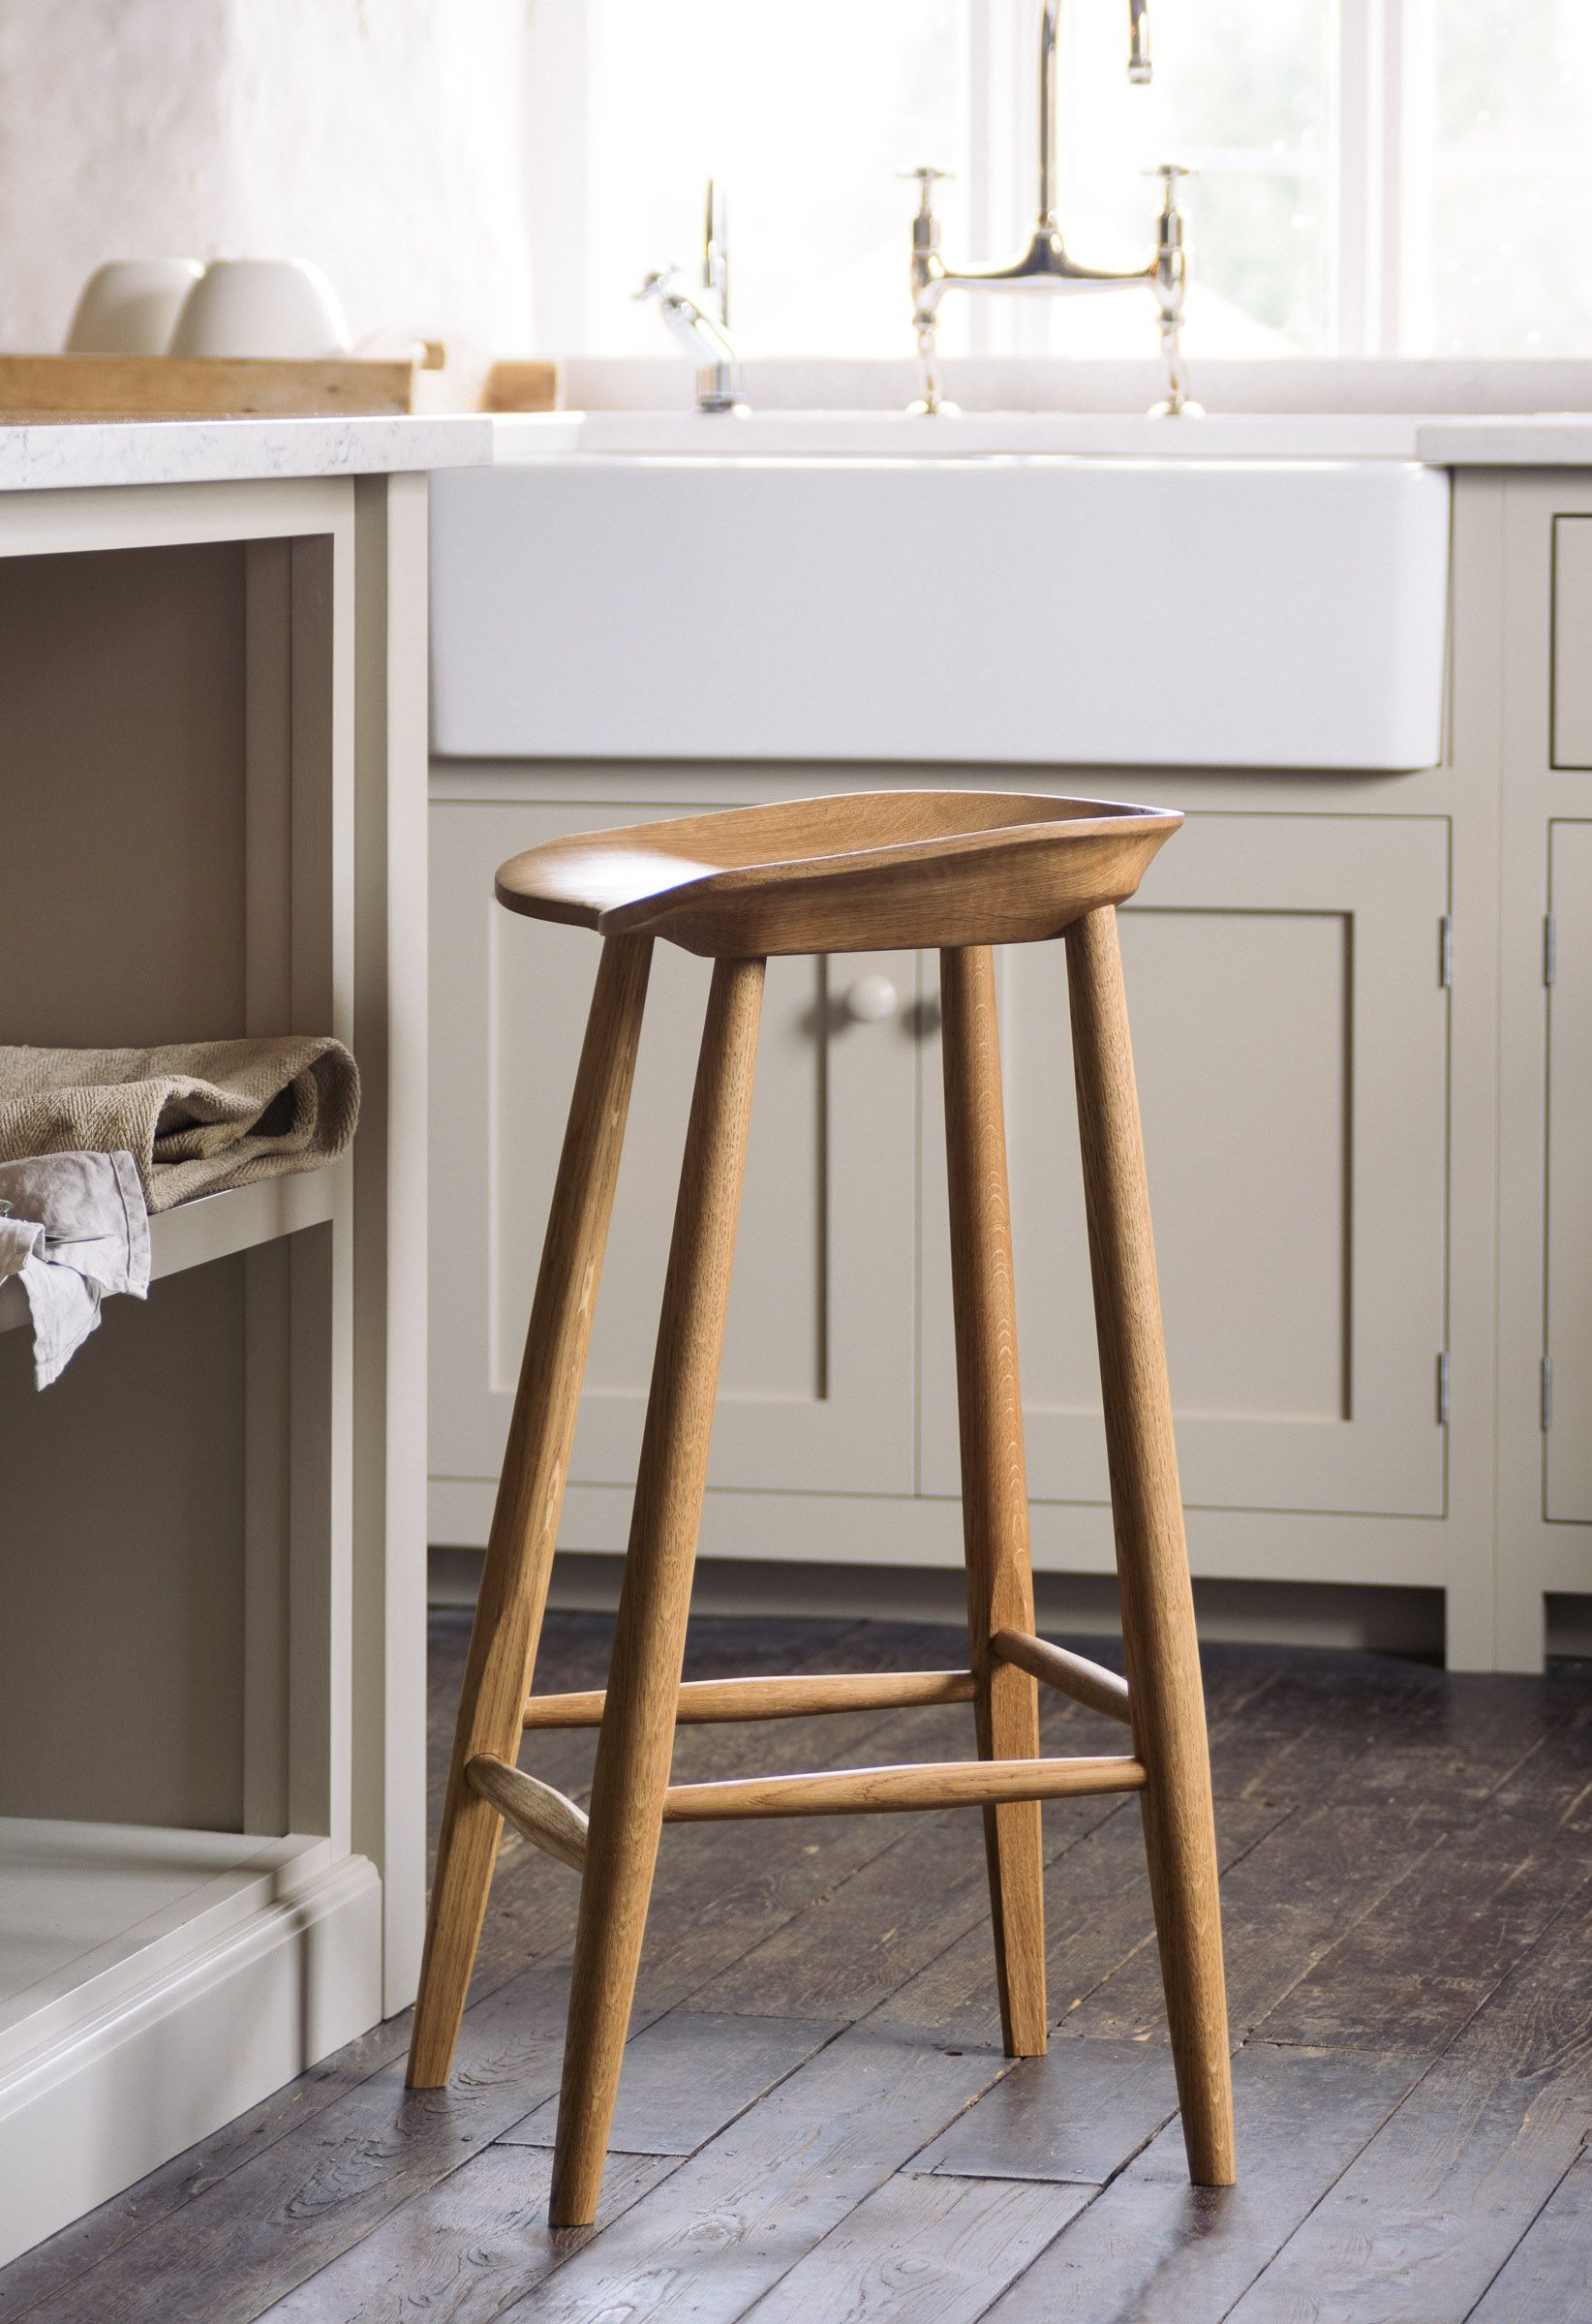 Awesome Classy Kitchen Bar Stools Addition To Your Kitchen Https